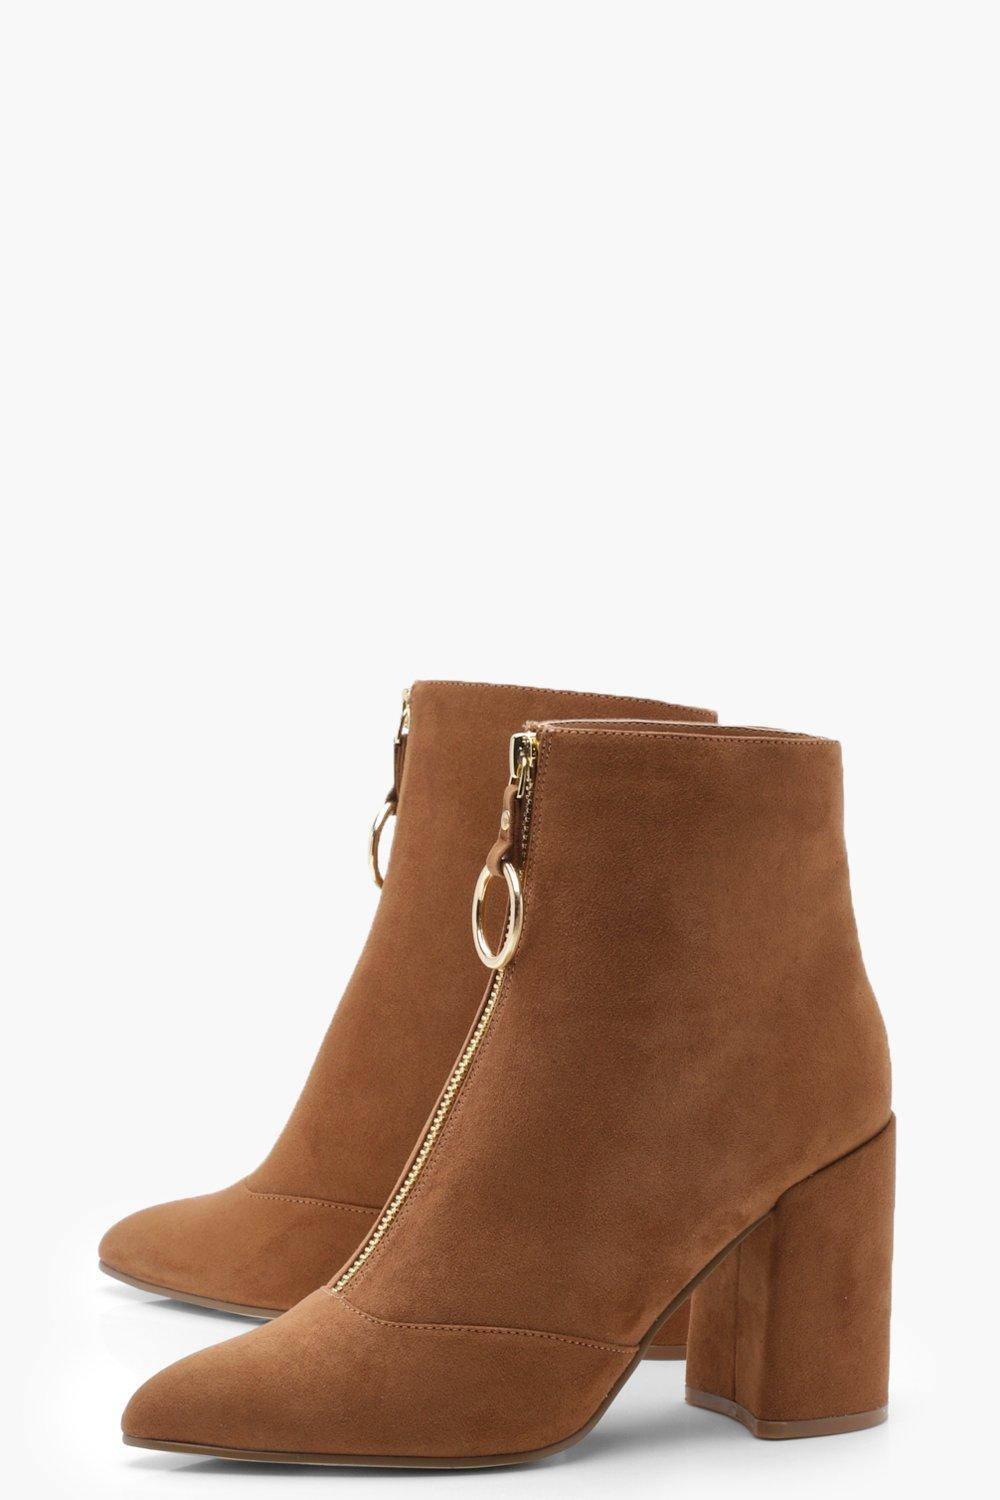 Boohoo O Ring Pull Suedette Shoe Boots in Tan (Brown)